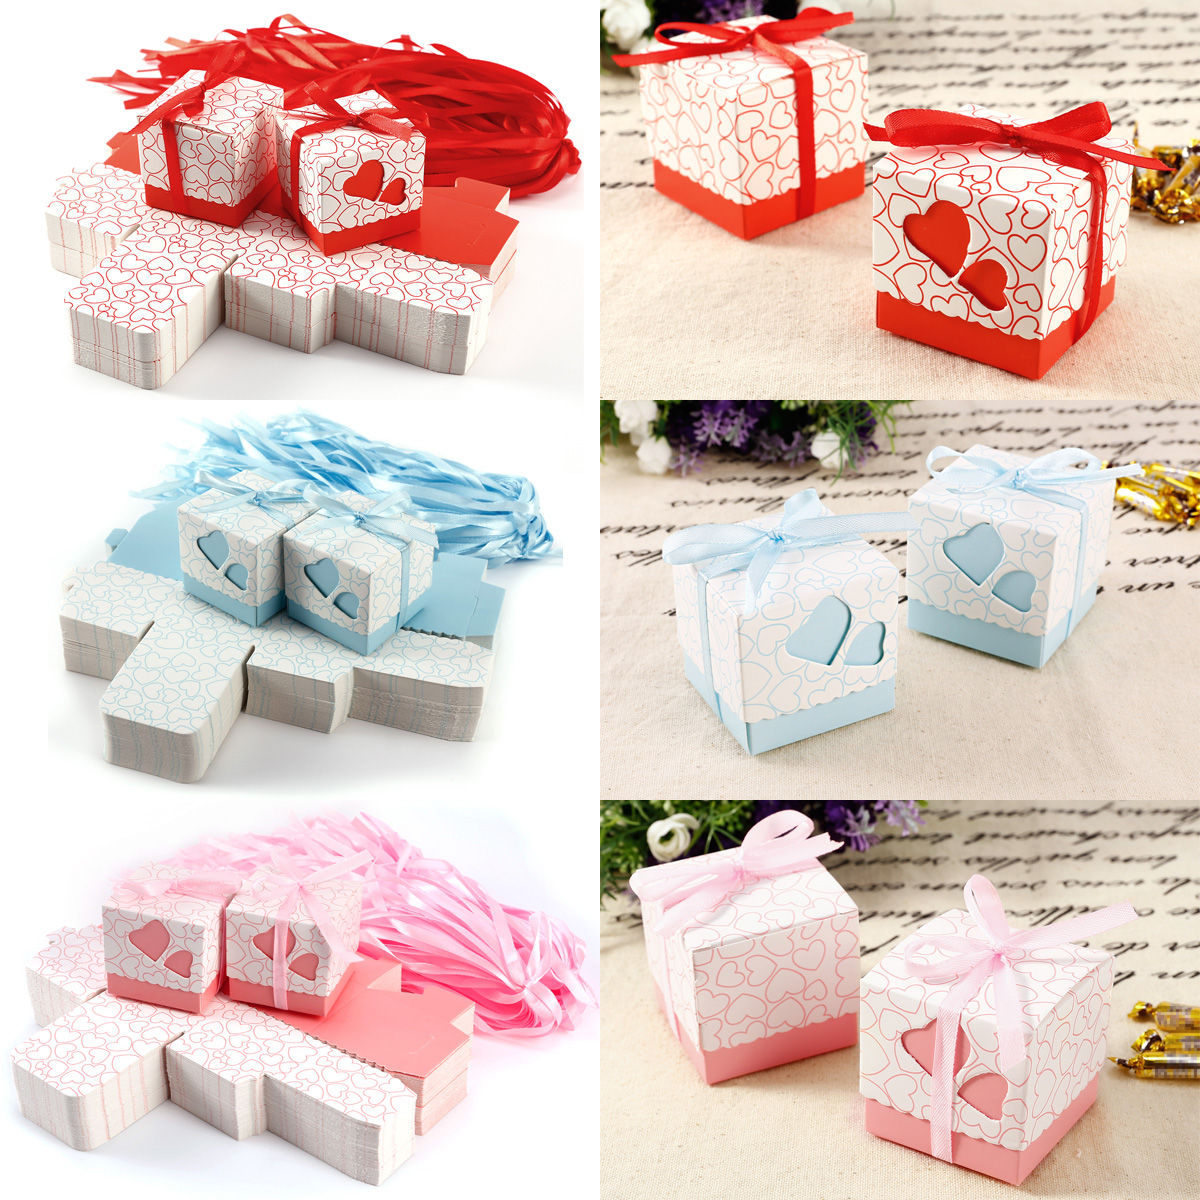 Wedding Favours Home, Furniture & DIY 100pcs Chocolate Sweets Cup Cake Wedding Favour Gift Boxes 5x5cm